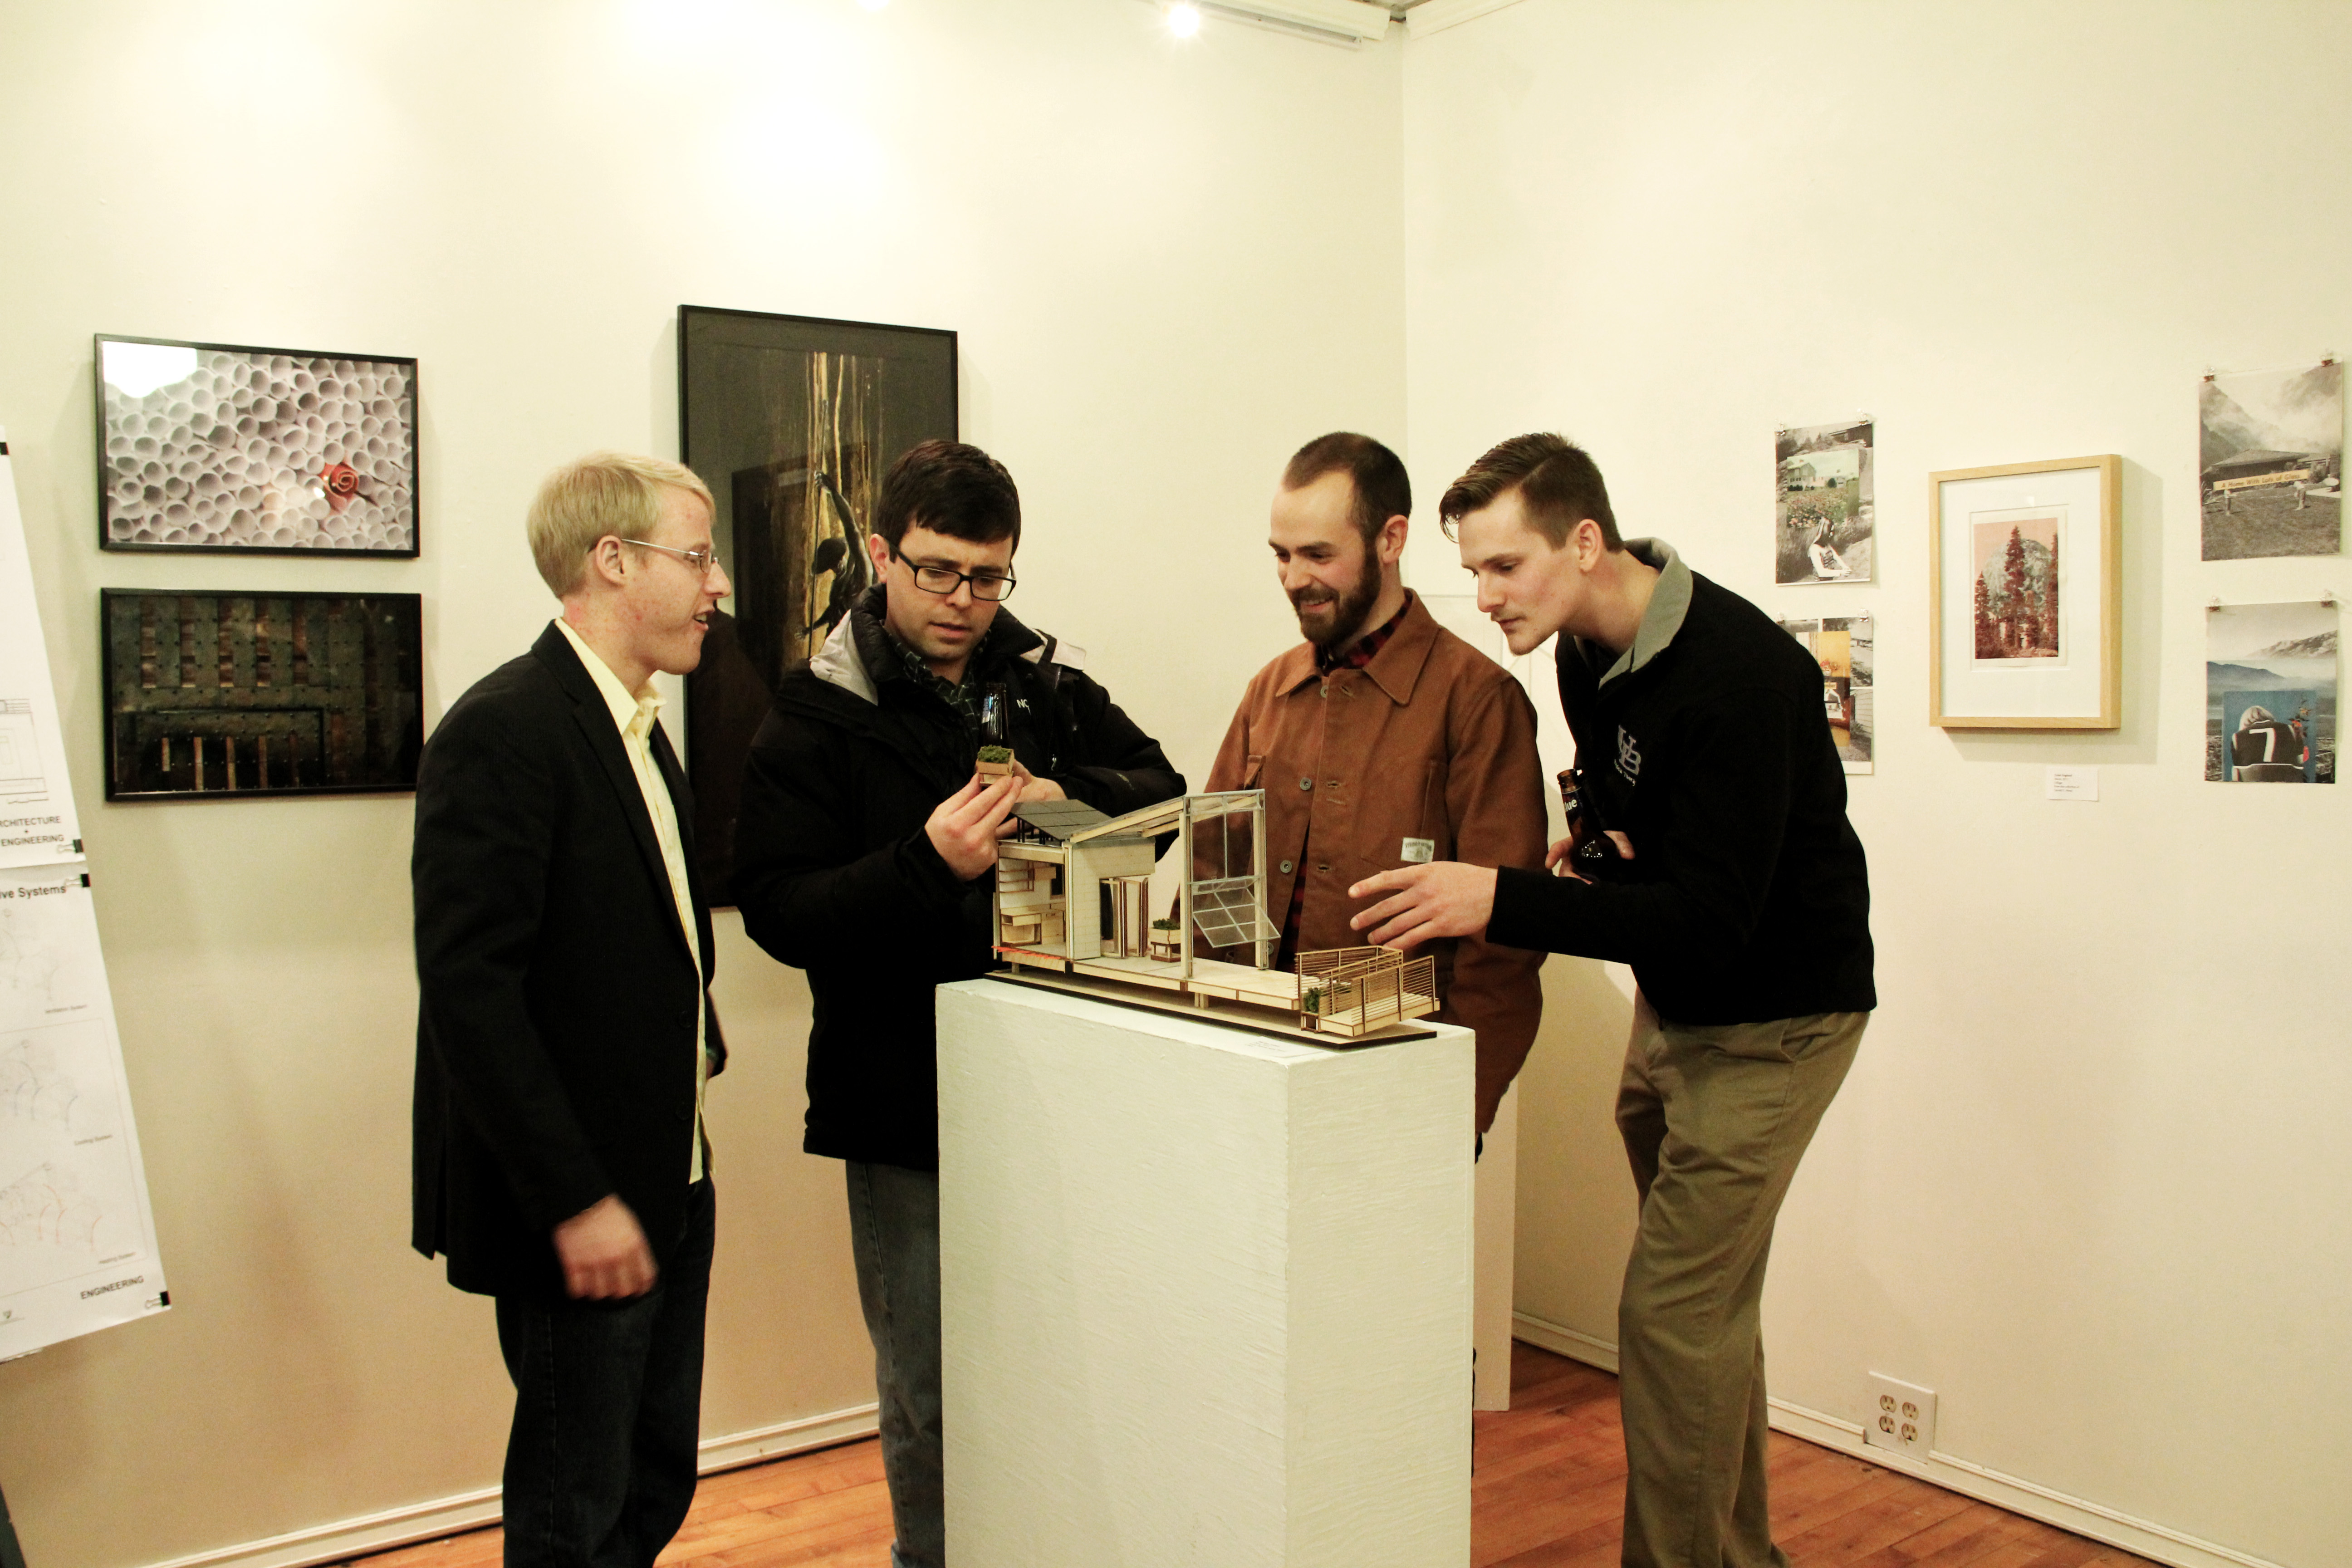 architectural project manager duane warren second from right was happy to discuss about